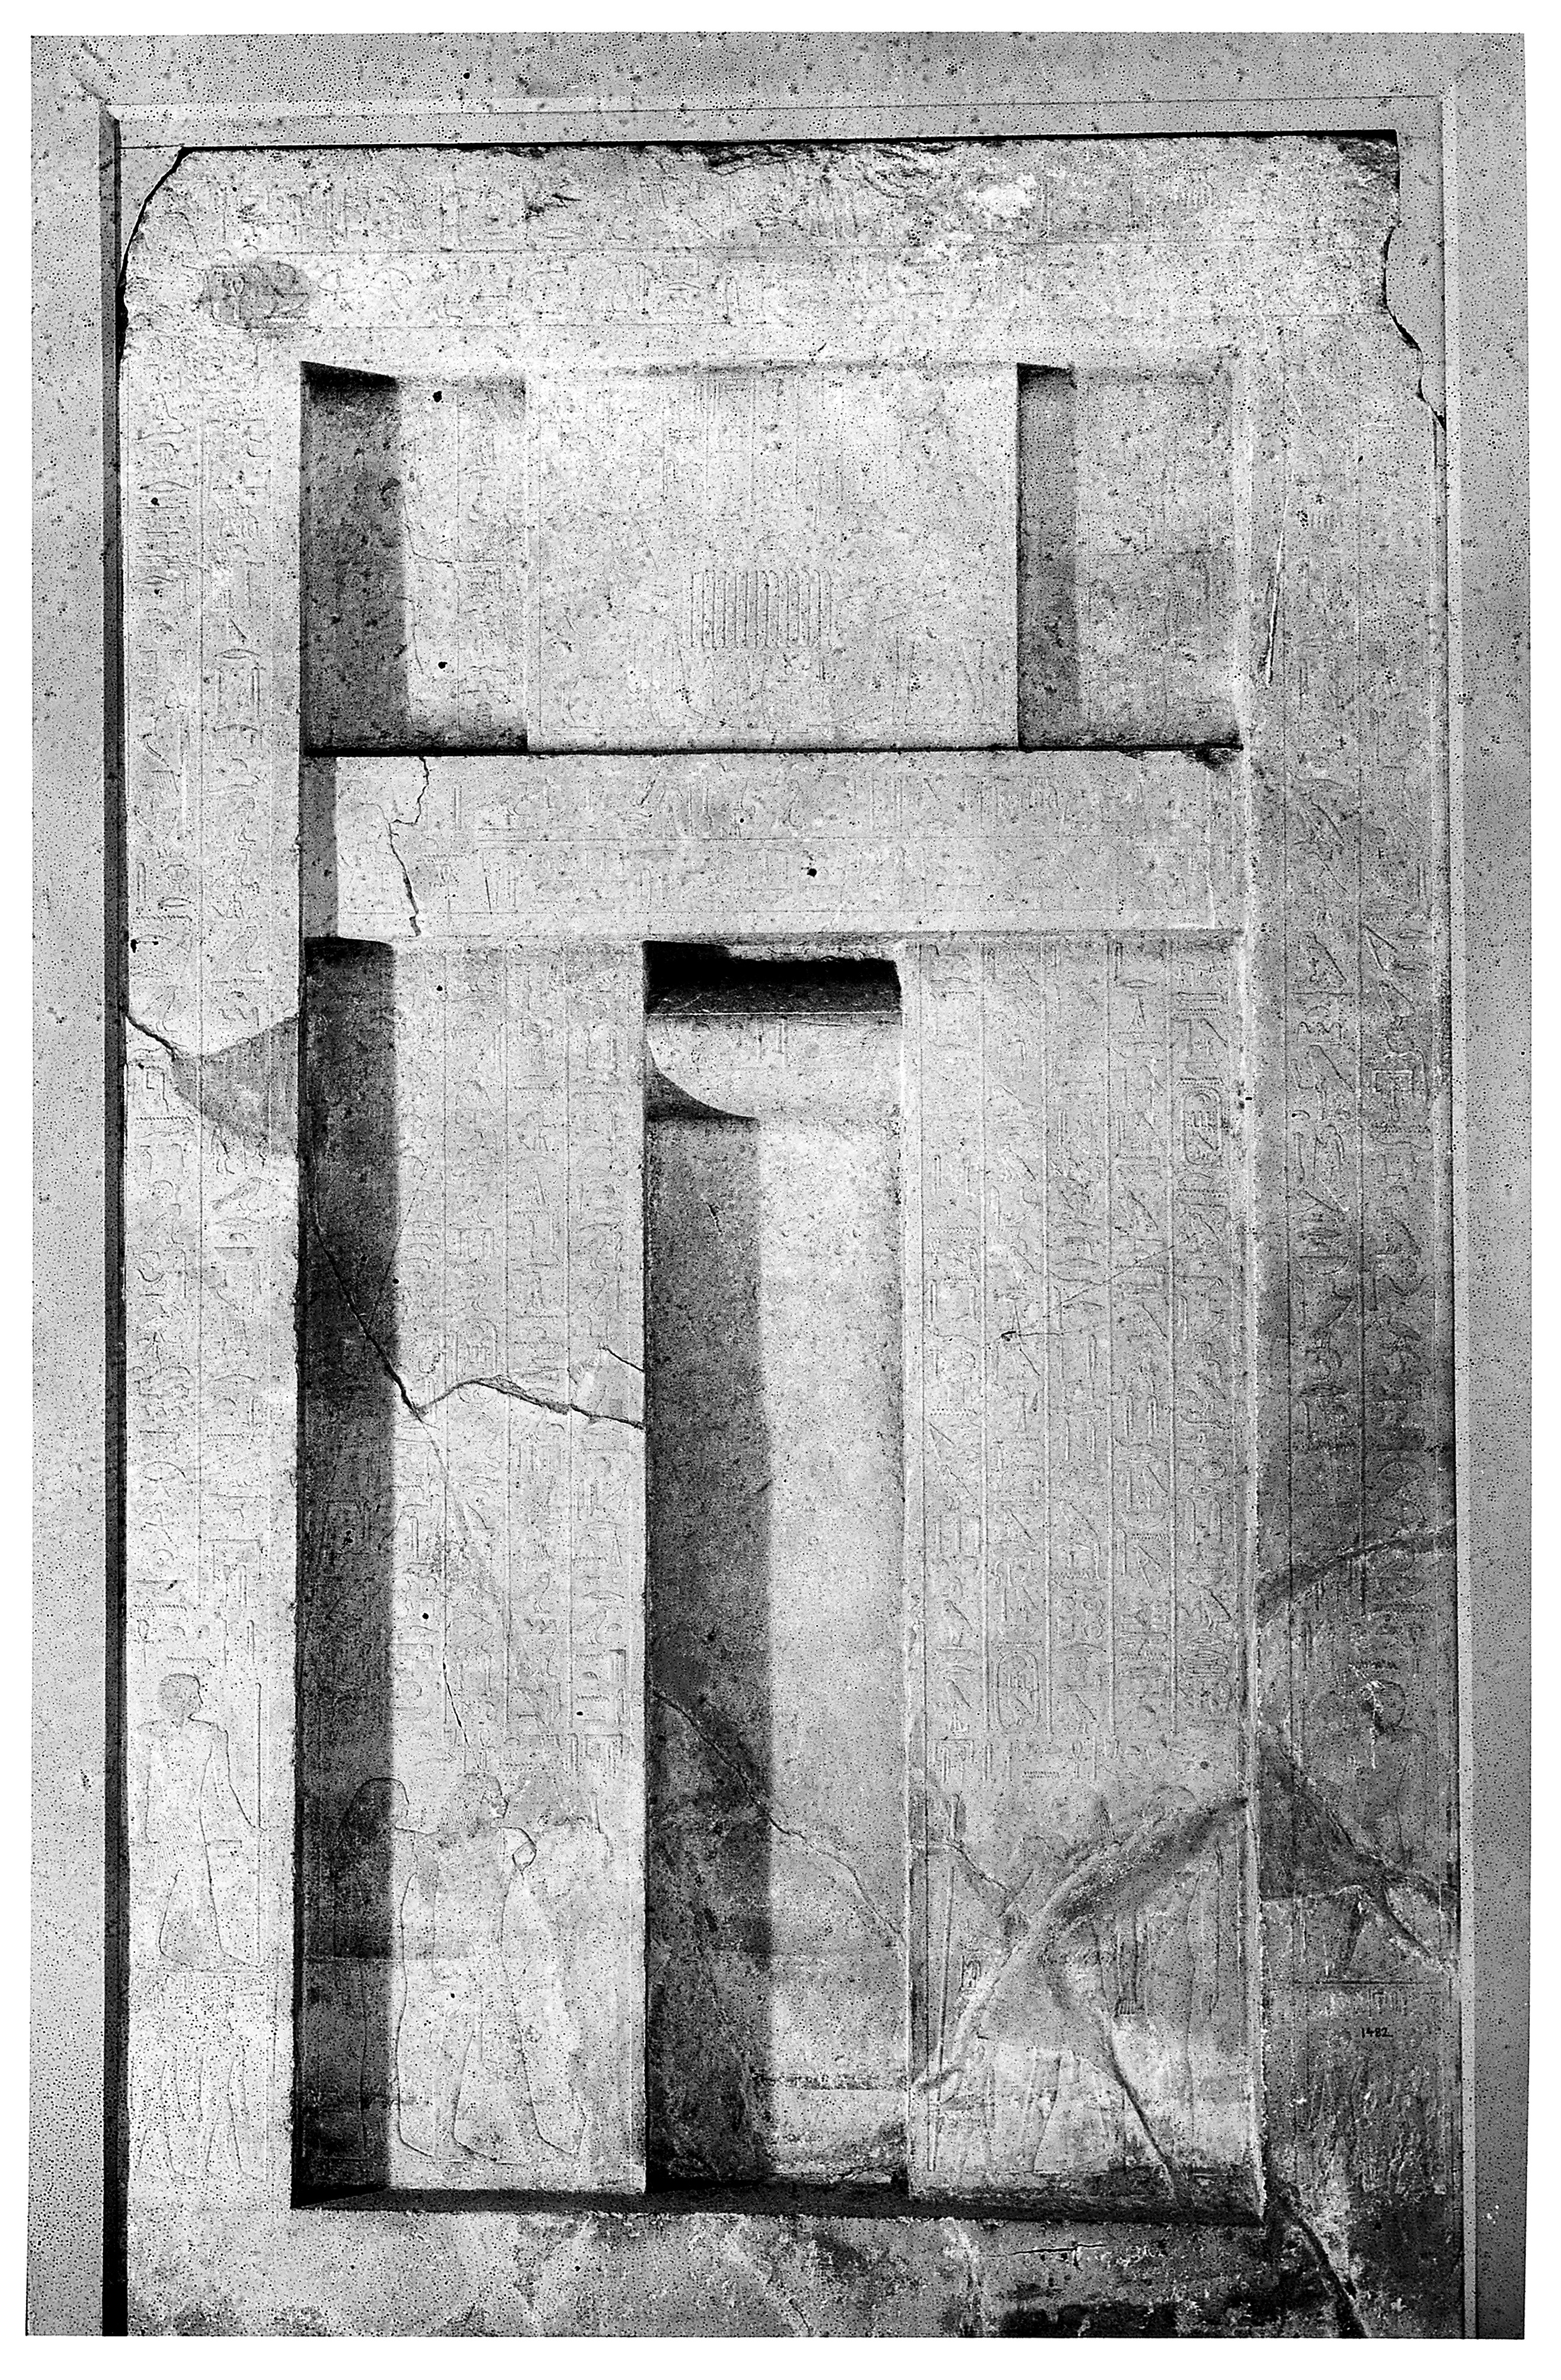 FileEgypt The false door of the tomb of the physician of King Wellcome & File:Egypt The false door of the tomb of the physician of King ...